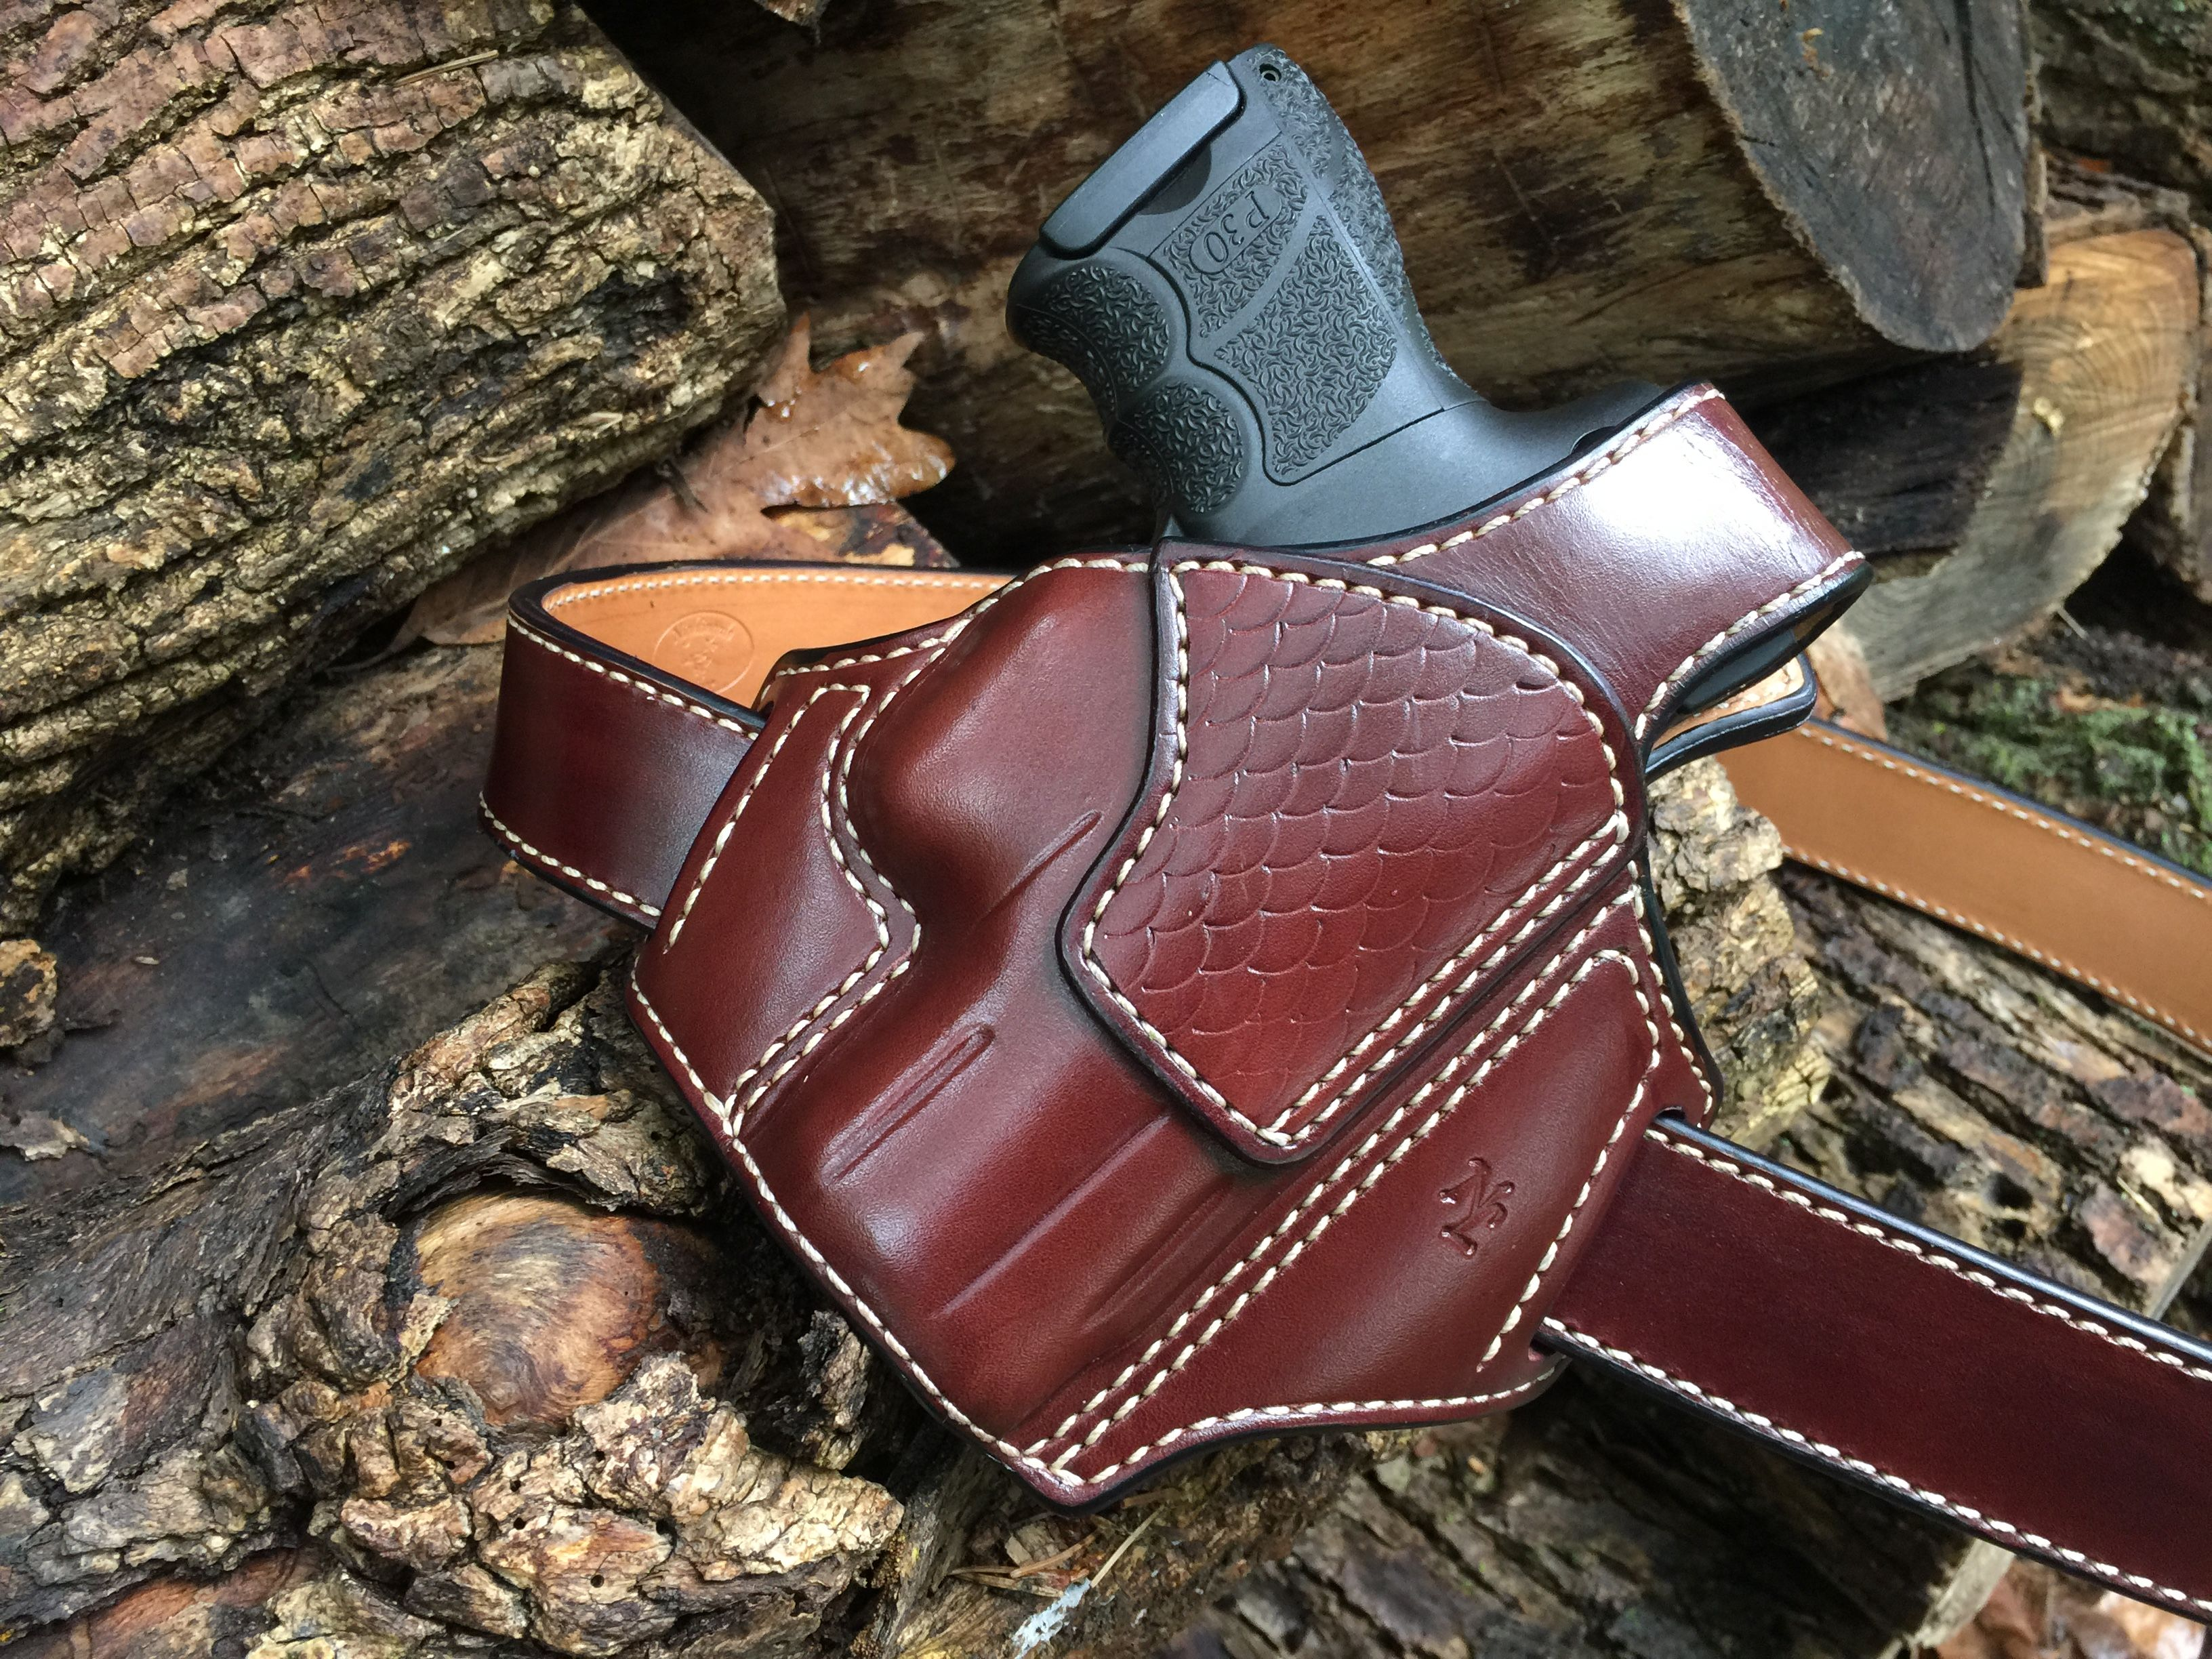 Osprey mens leather gloves - Nightingale Leather Hk P30sk Osprey Owb Holster W Thumb Break Mahogany Cowhide Natural